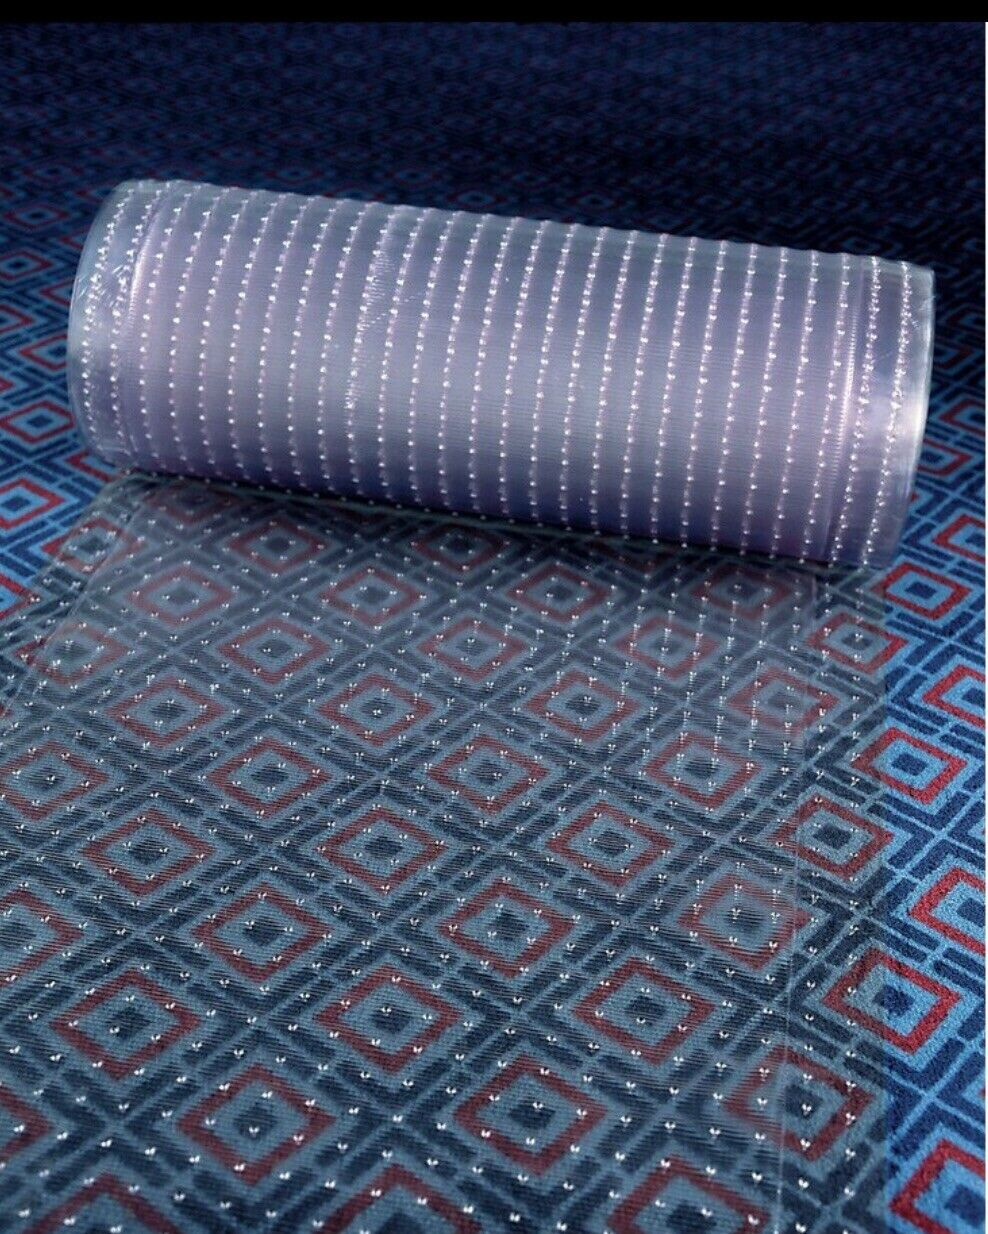 Clear Plastic Runner Rug Carpet Protector Protector Protector Mat Ribbed Multi - Grip.(26in X 50FT) 913df9